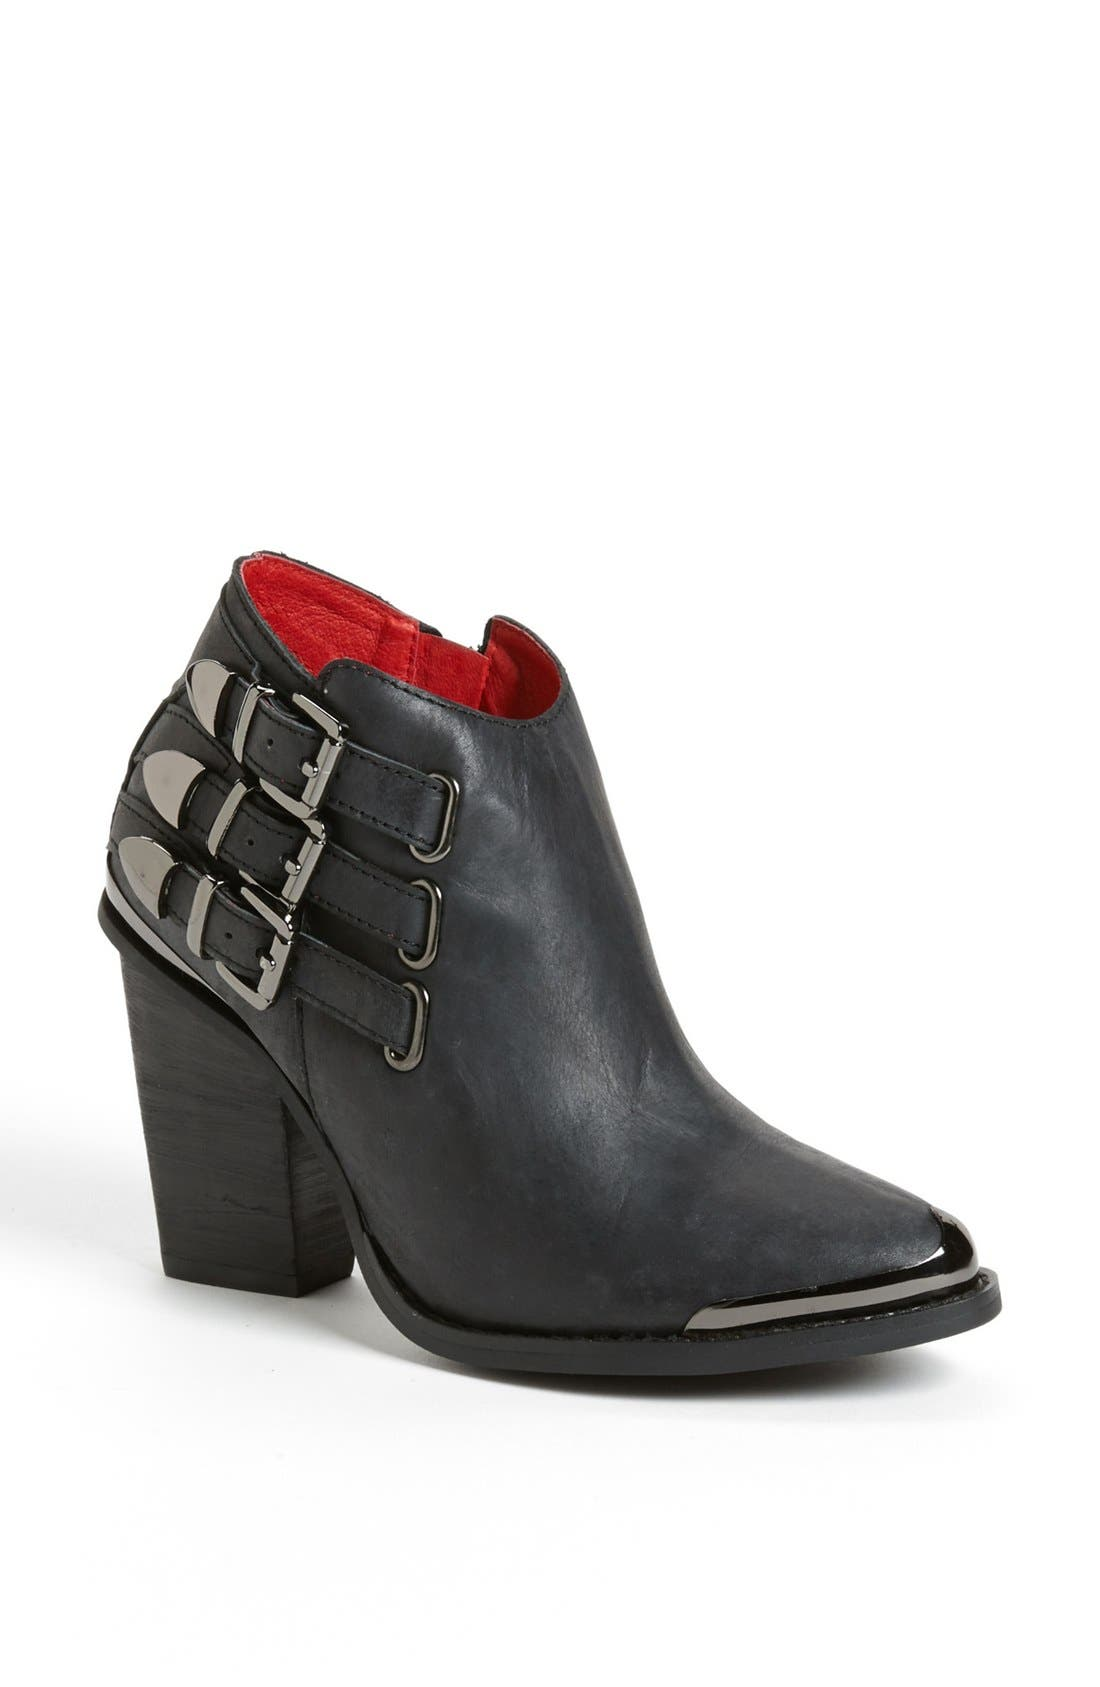 Alternate Image 1 Selected - Jeffrey Campbell 'Westin' Bootie